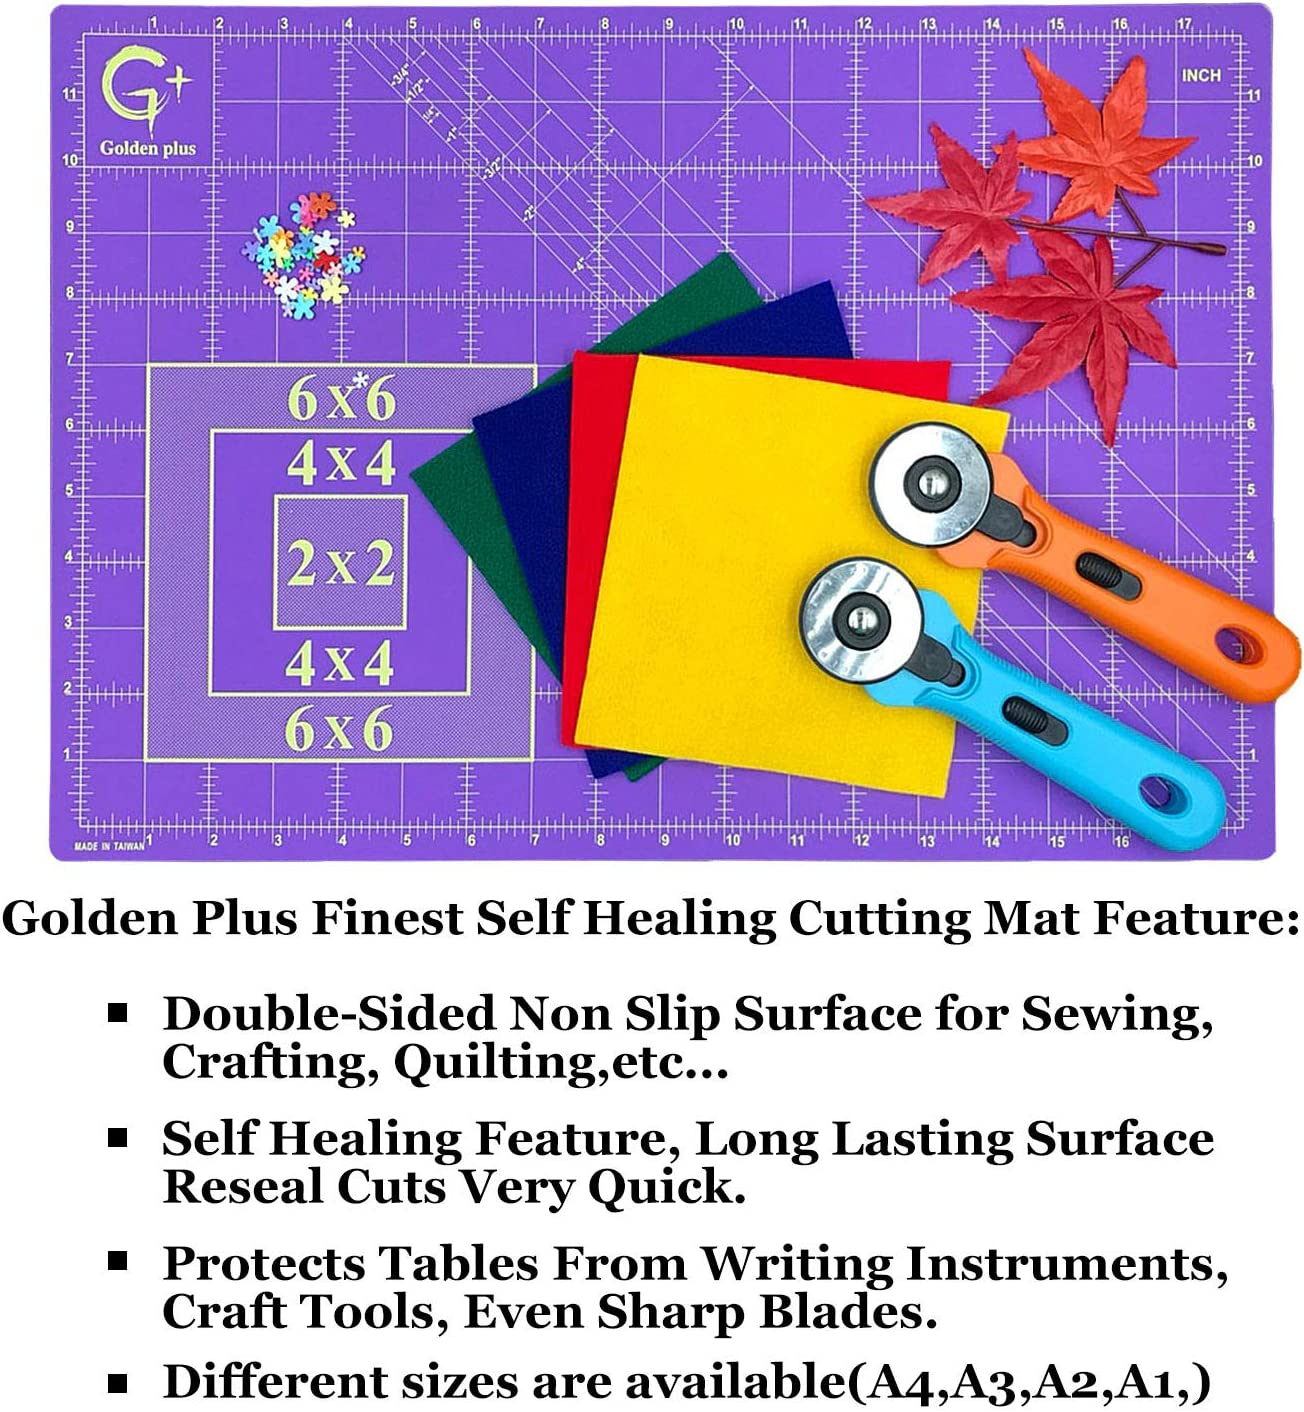 26x38Full Sewing Cafts and All Arts Projects Golden+ Eco-Friendly Quilting Cutting Mat 24x36 Inches Purple//Black ; Self-Healing Double-Sided Durable Non-Slip Cutting Mats for Quilting Fabric